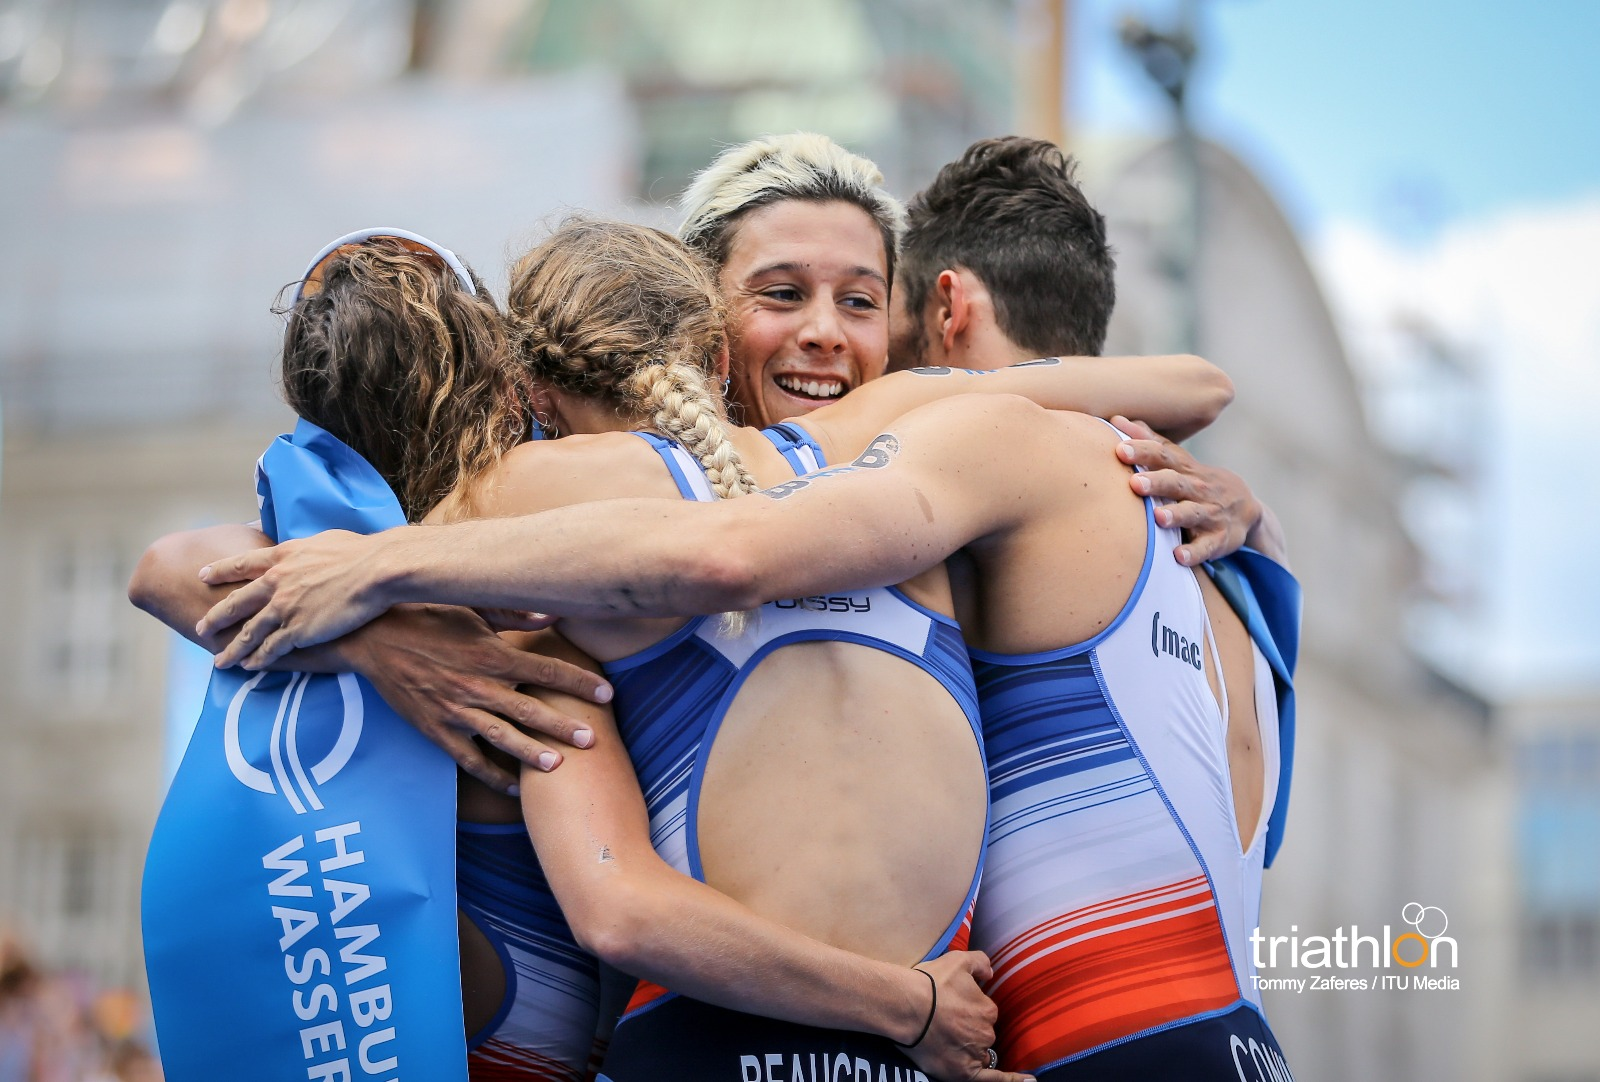 French team shows true colours to secure Mixed Relay World title in Hamburg   Triathlon.org